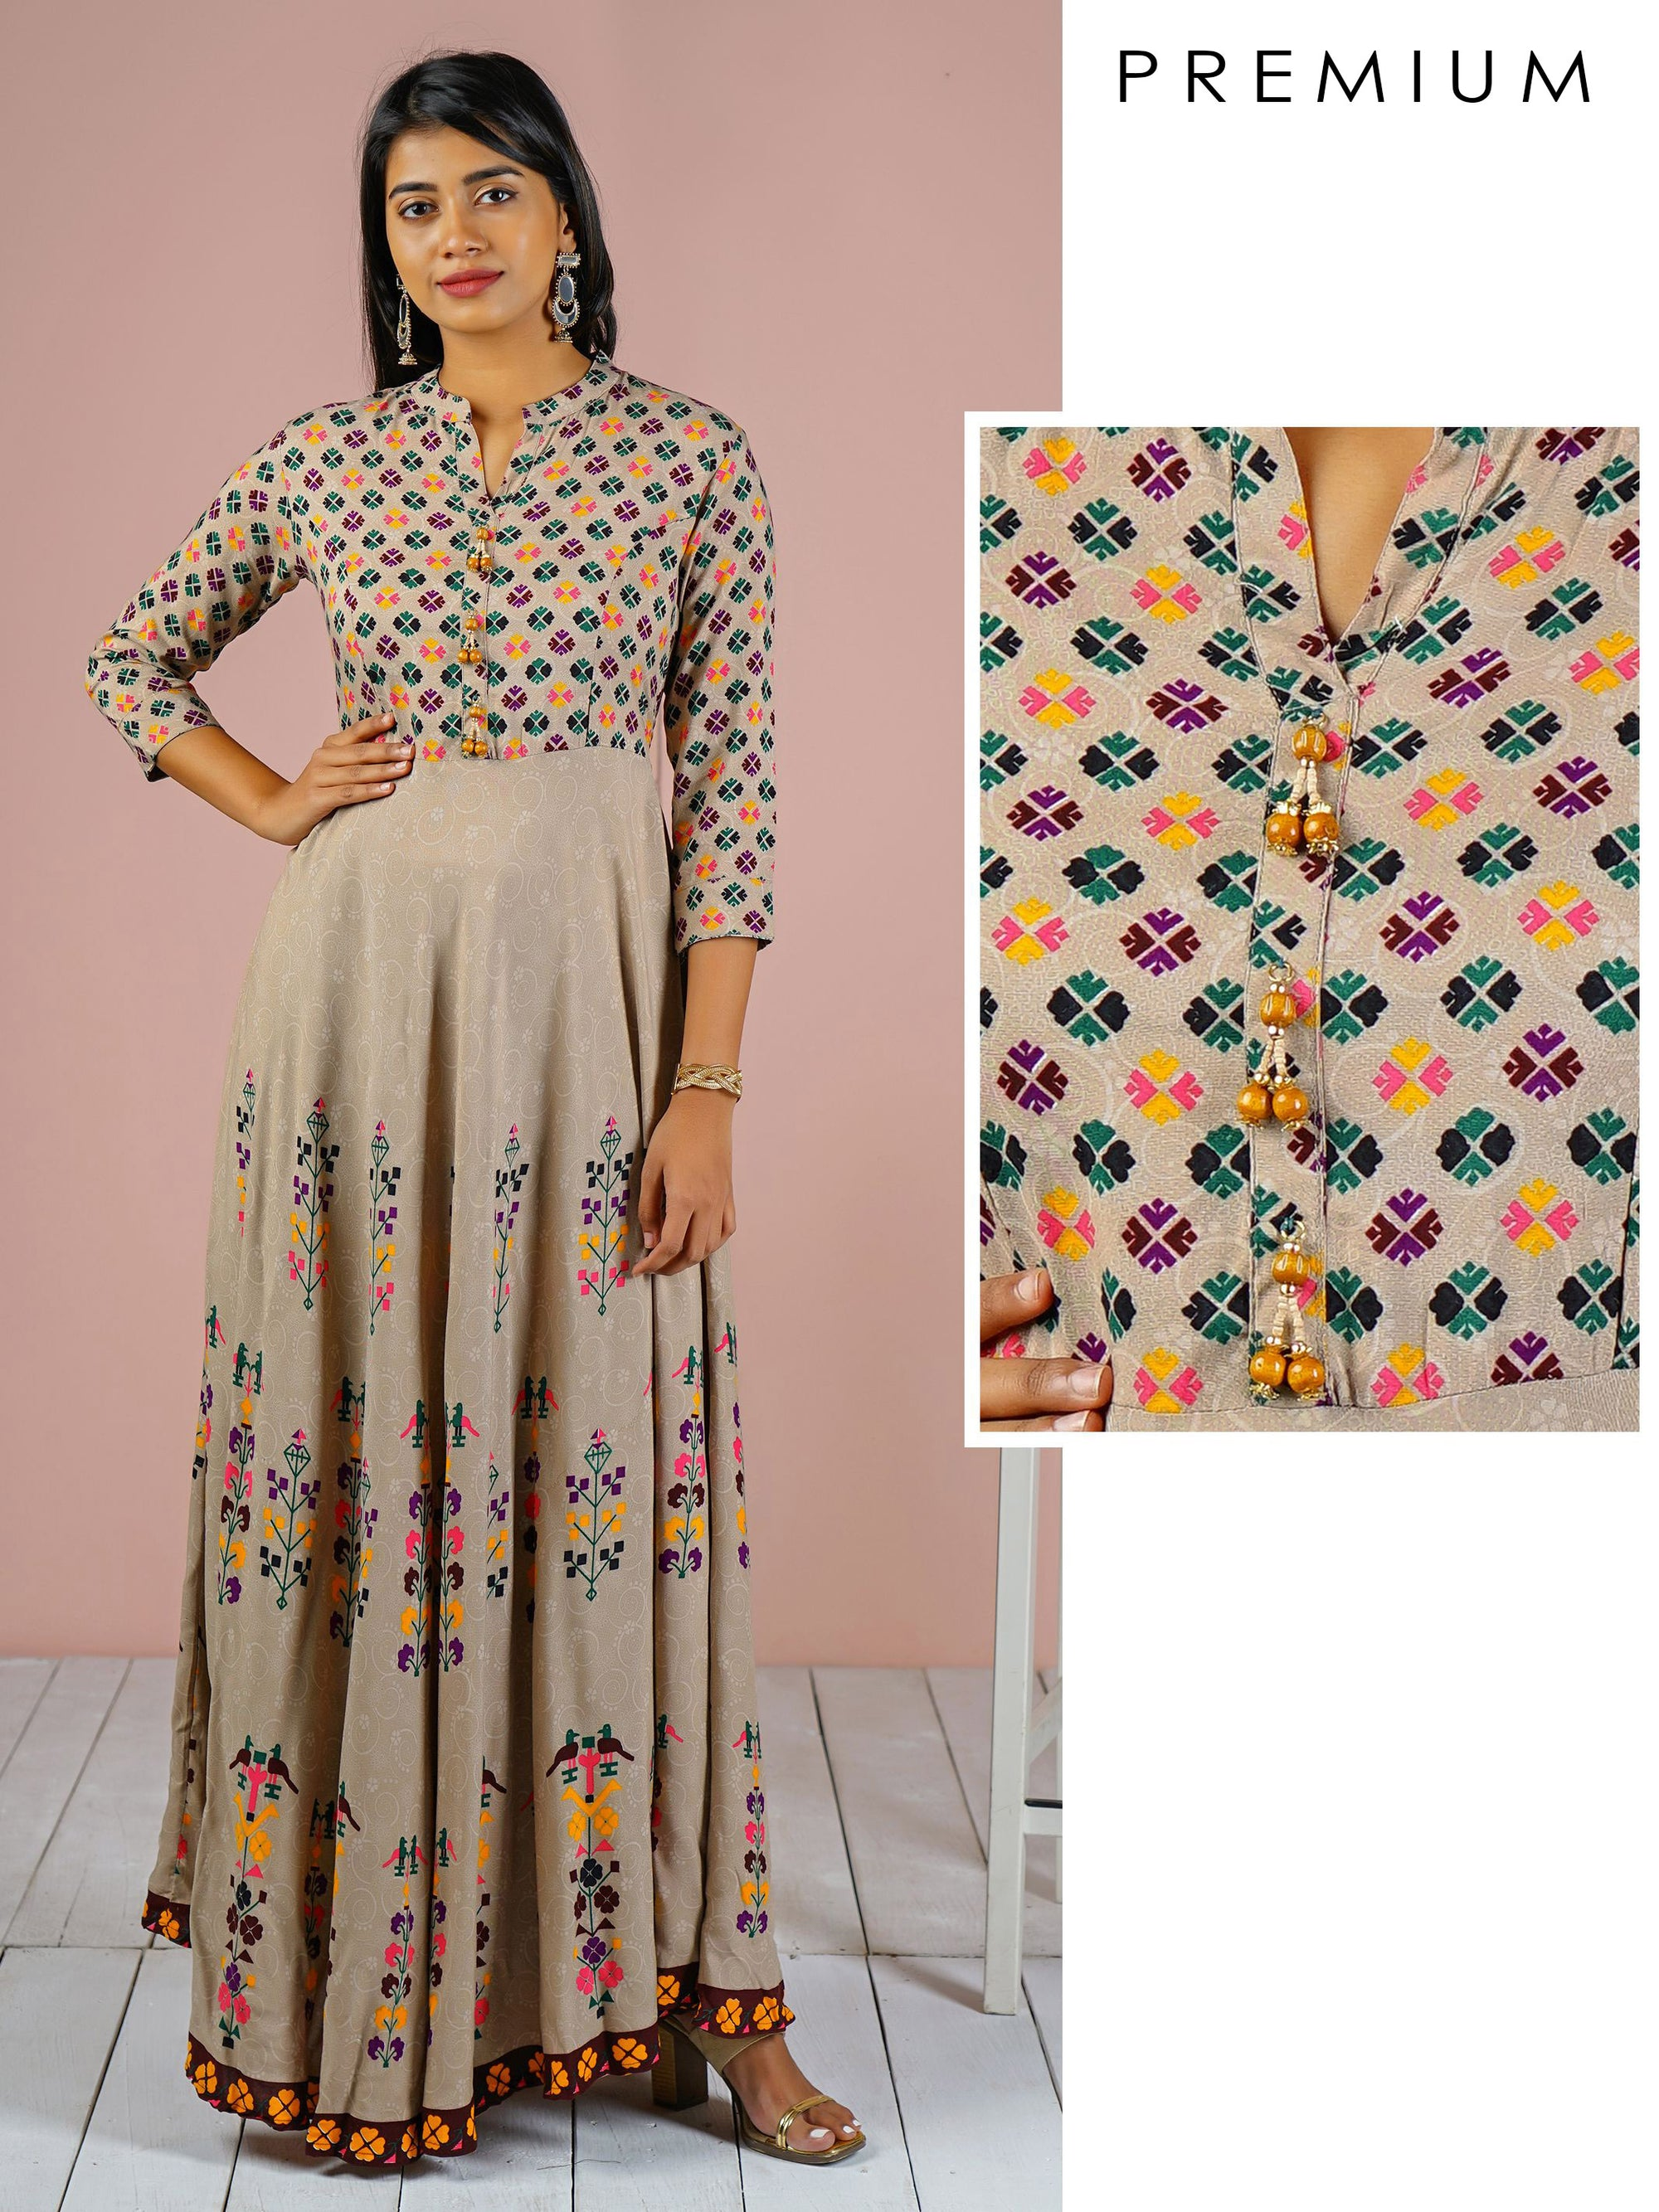 Quirky Printed Bias Cut Maxi